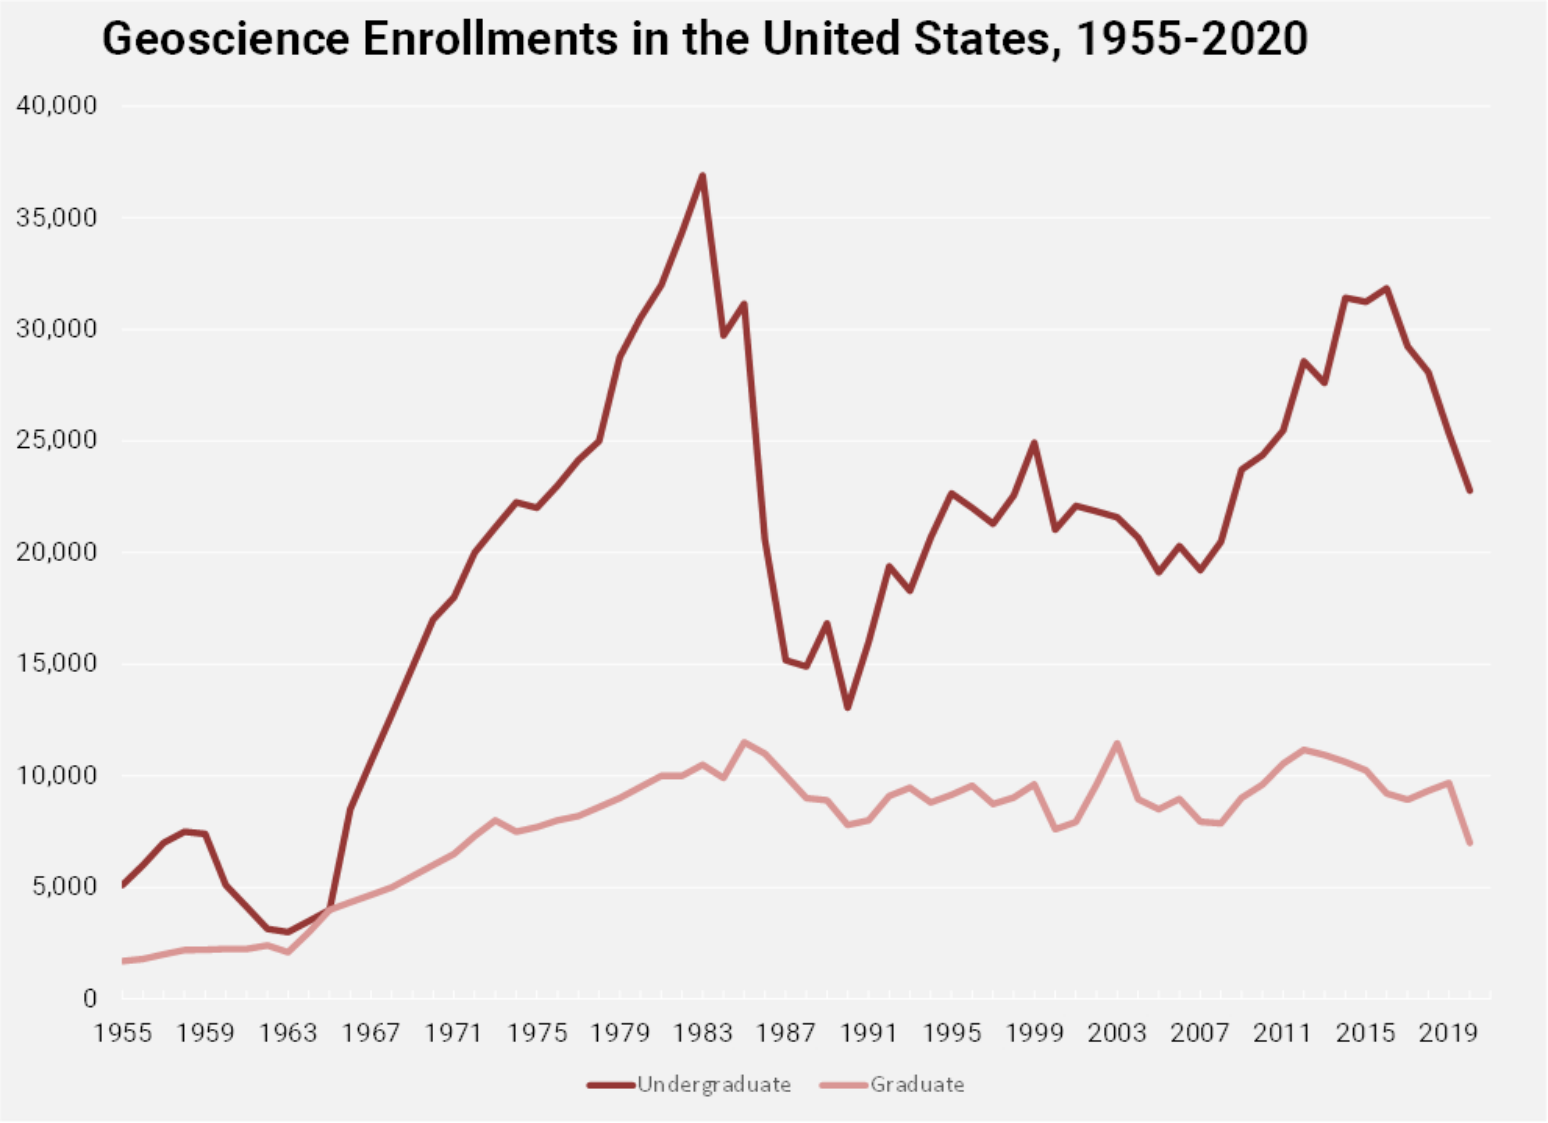 Geoscience Enrollments in the United States, 1955-2020